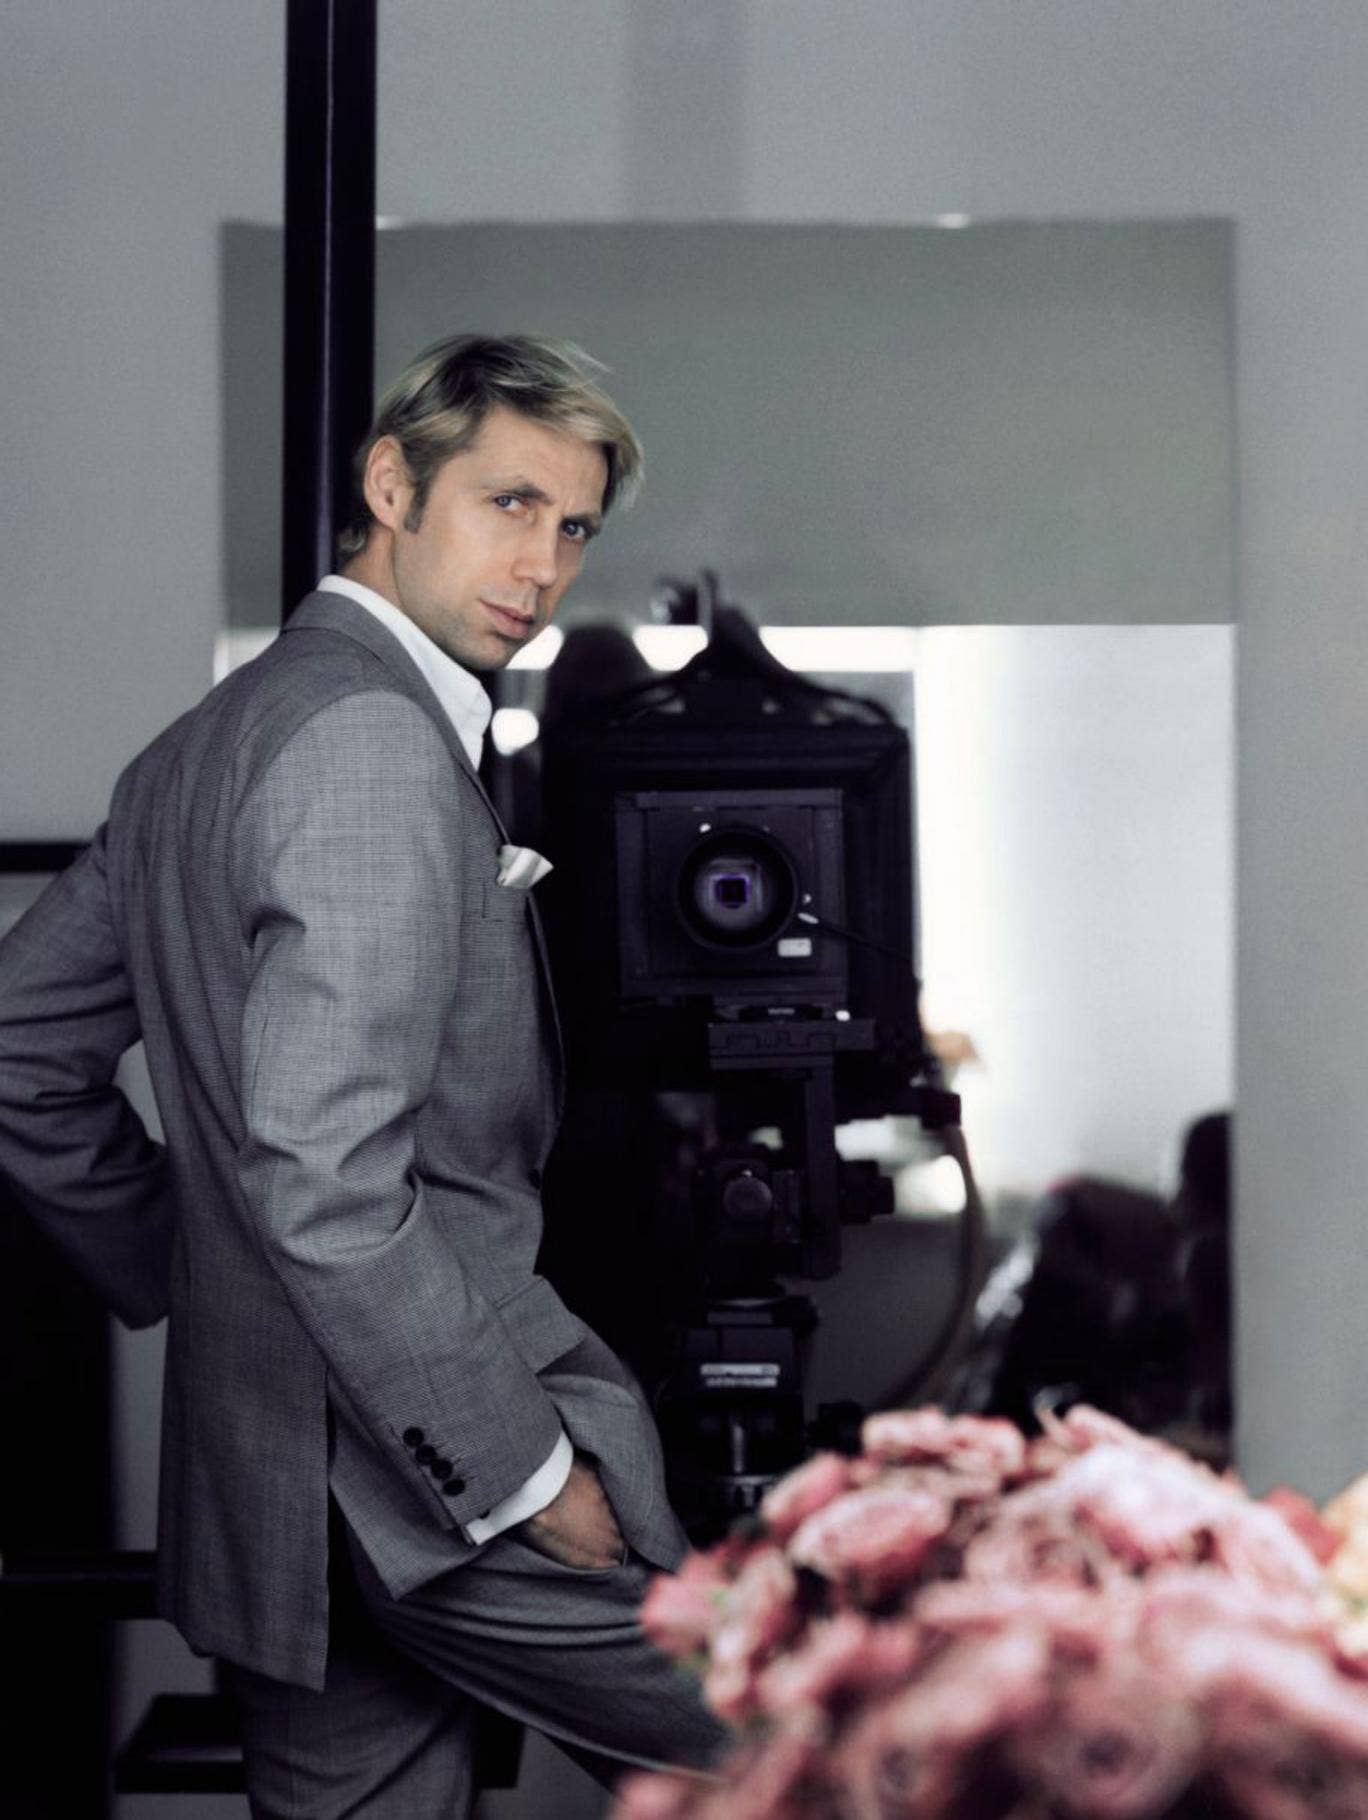 Interview with :   Nick Knight, British fashion photographer, film-maker, and director of SHOW studio.com on working